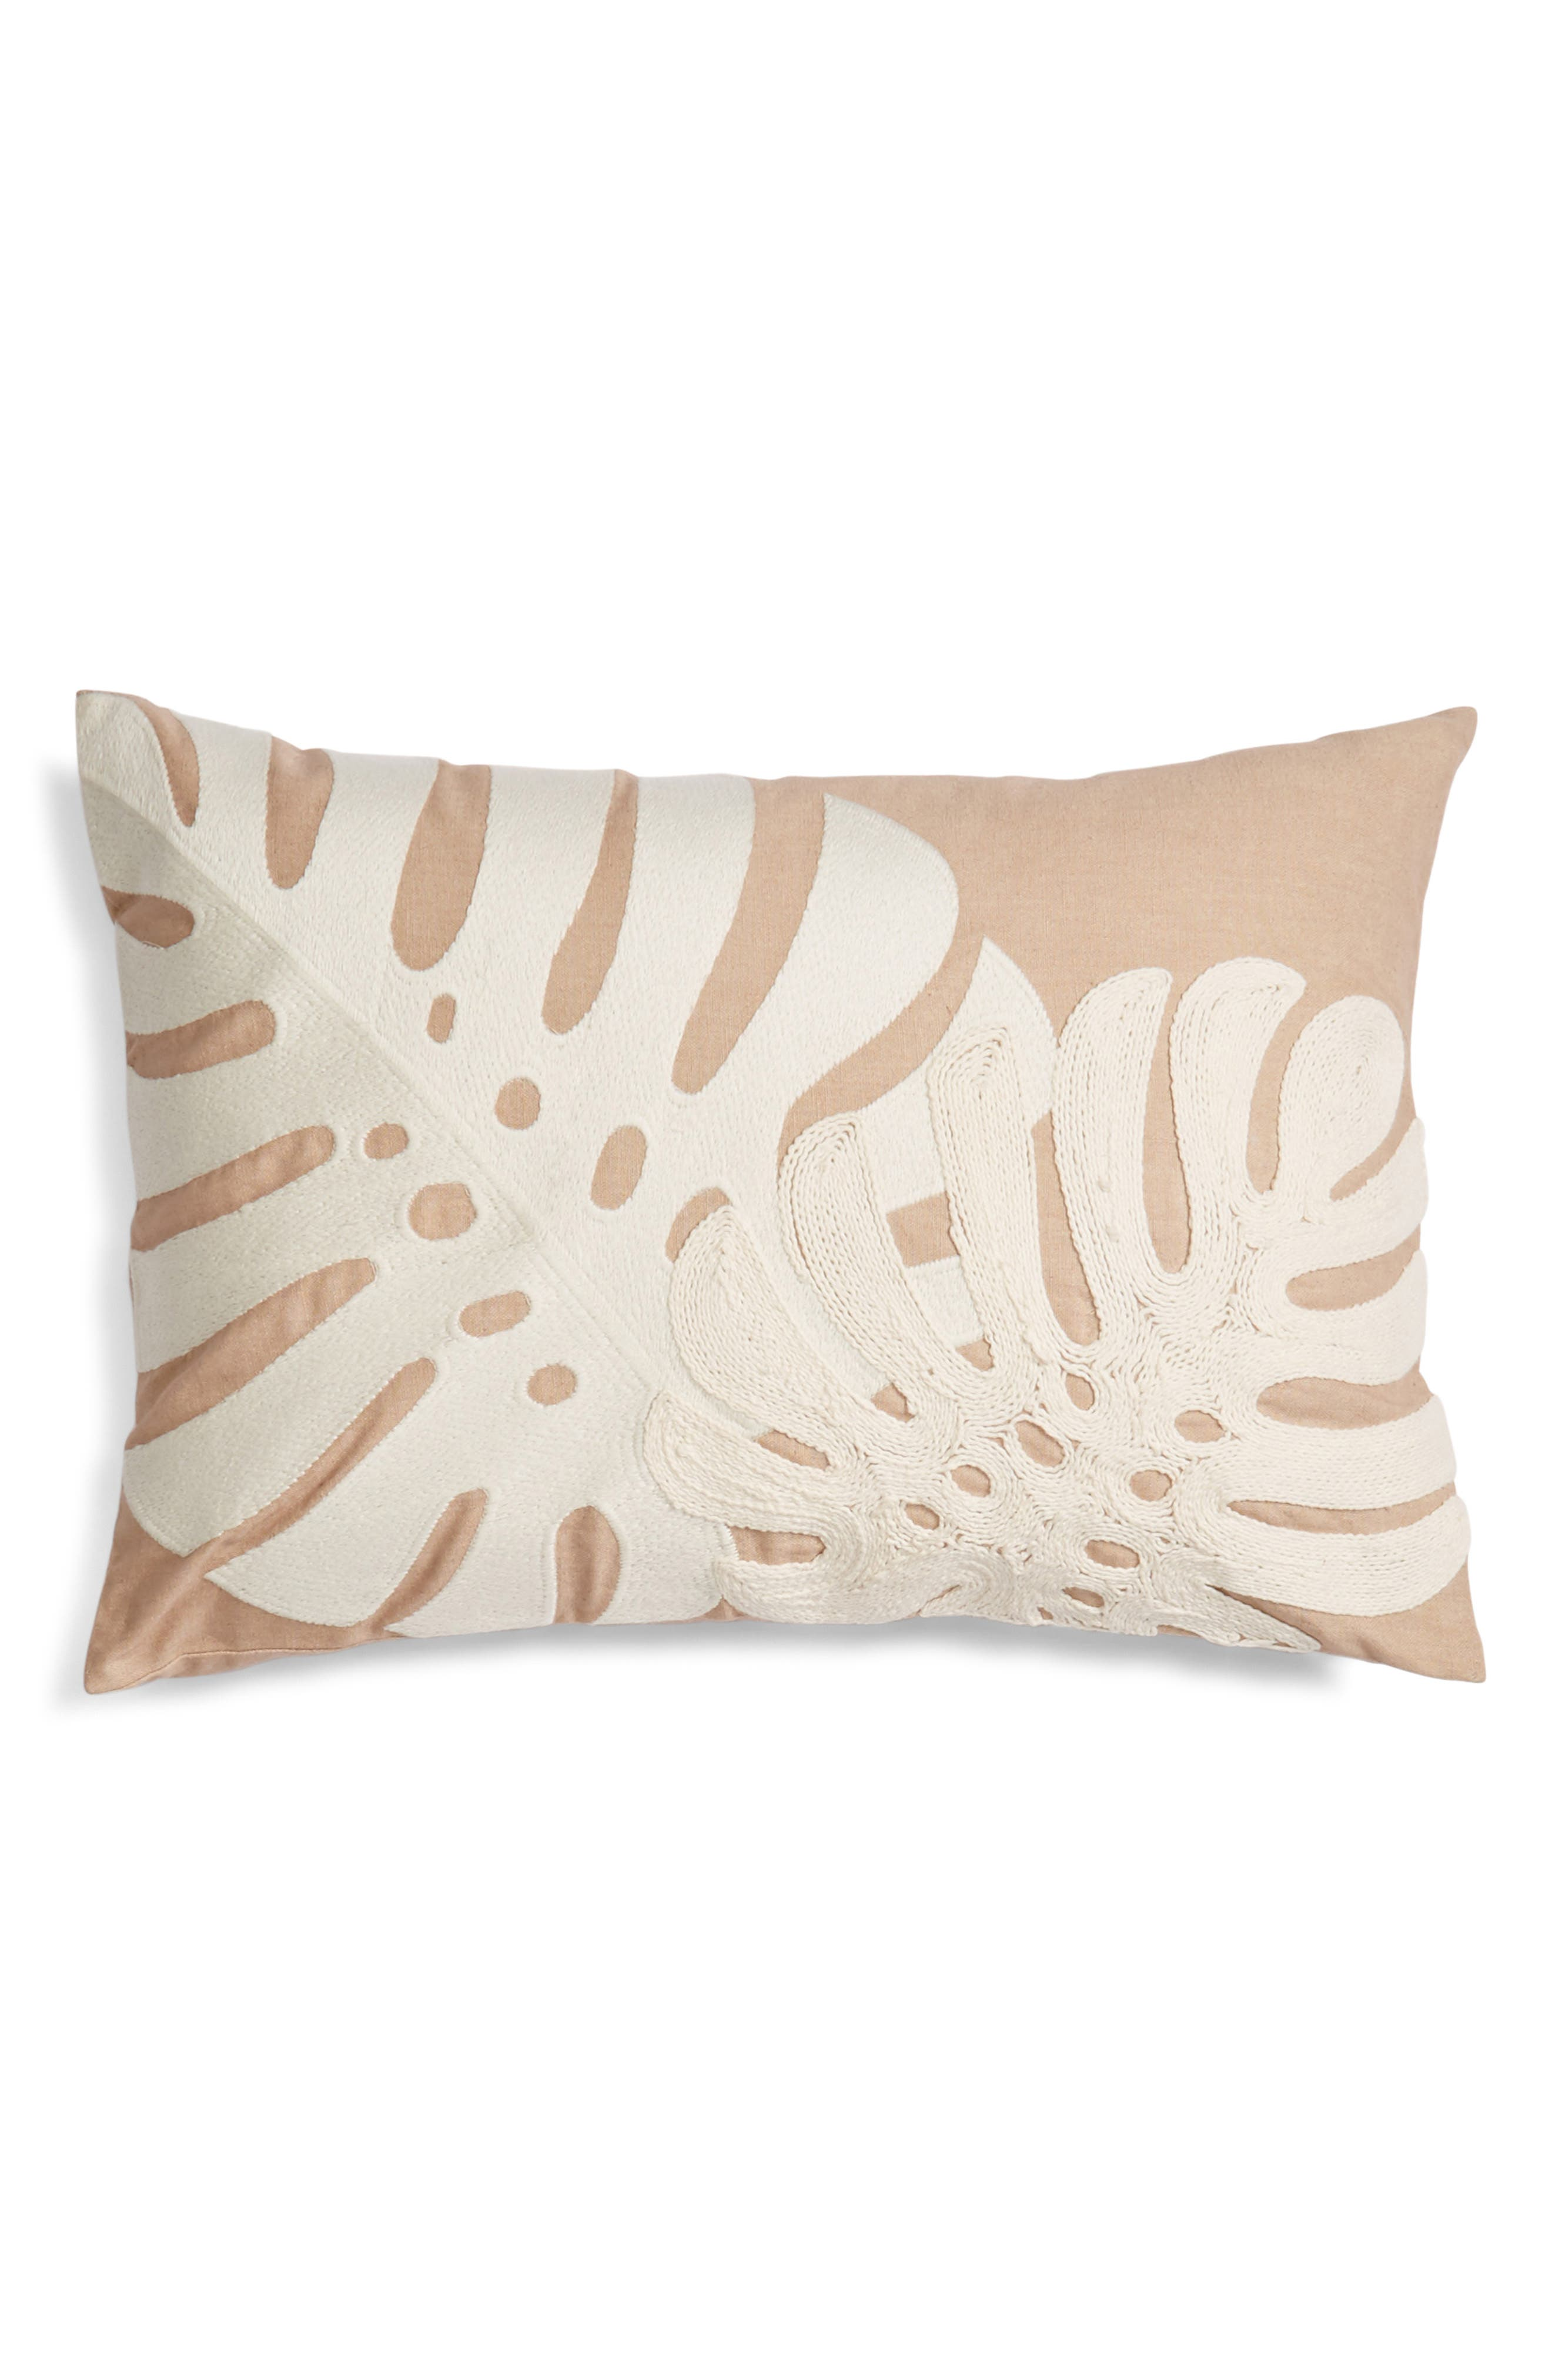 Nordstrom at Home Palm Embroidered Accent Pillow